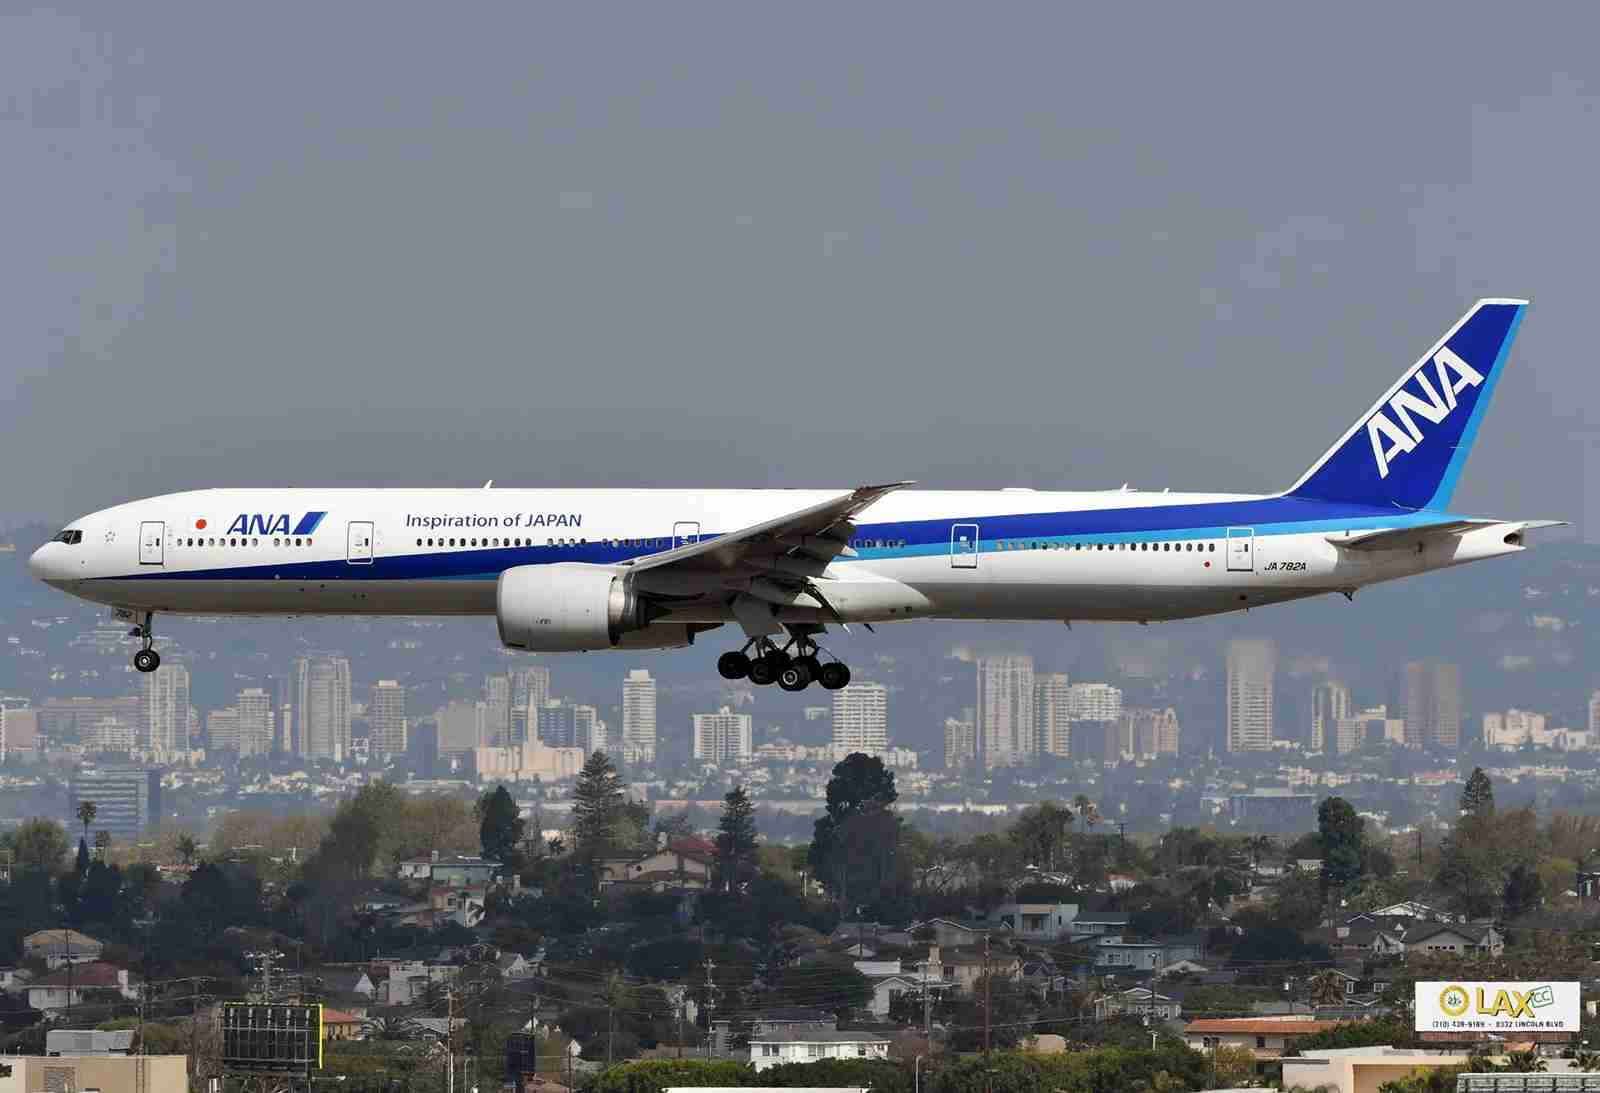 ANA Boeing 777-300ER from the H Hotel LAX (Photo by Alberto Riva/The Points Guy)